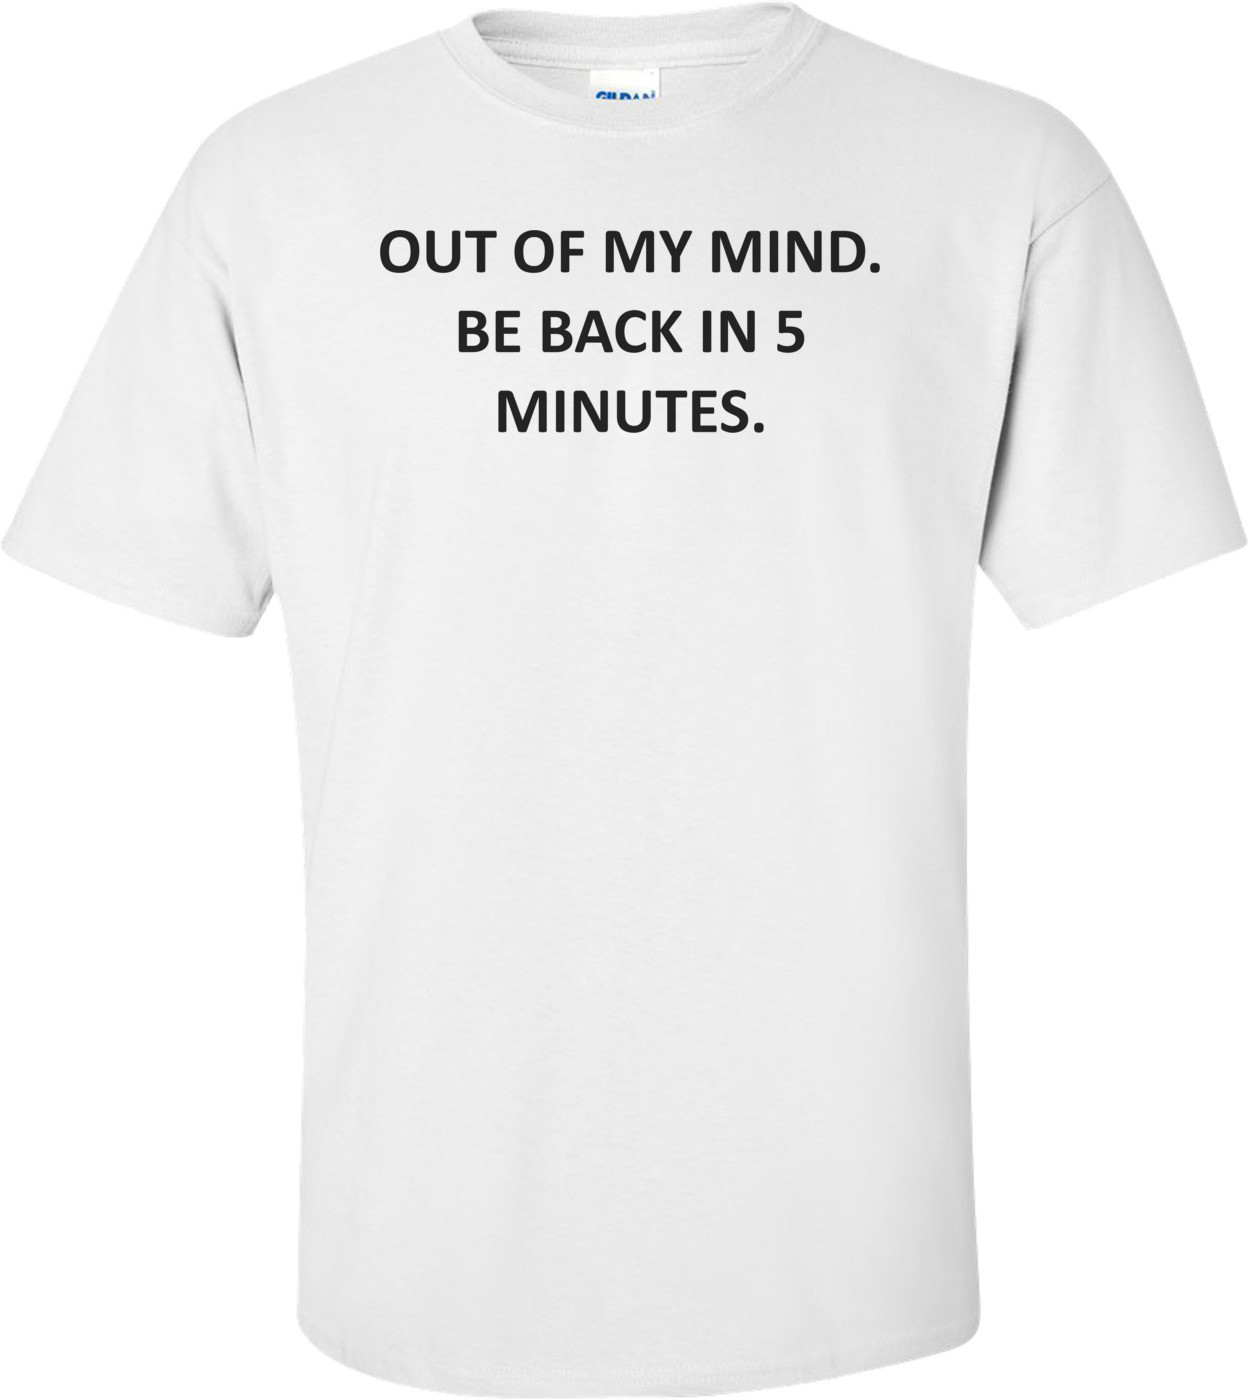 OUT OF MY MIND. BE BACK IN 5 MINUTES. Shirt